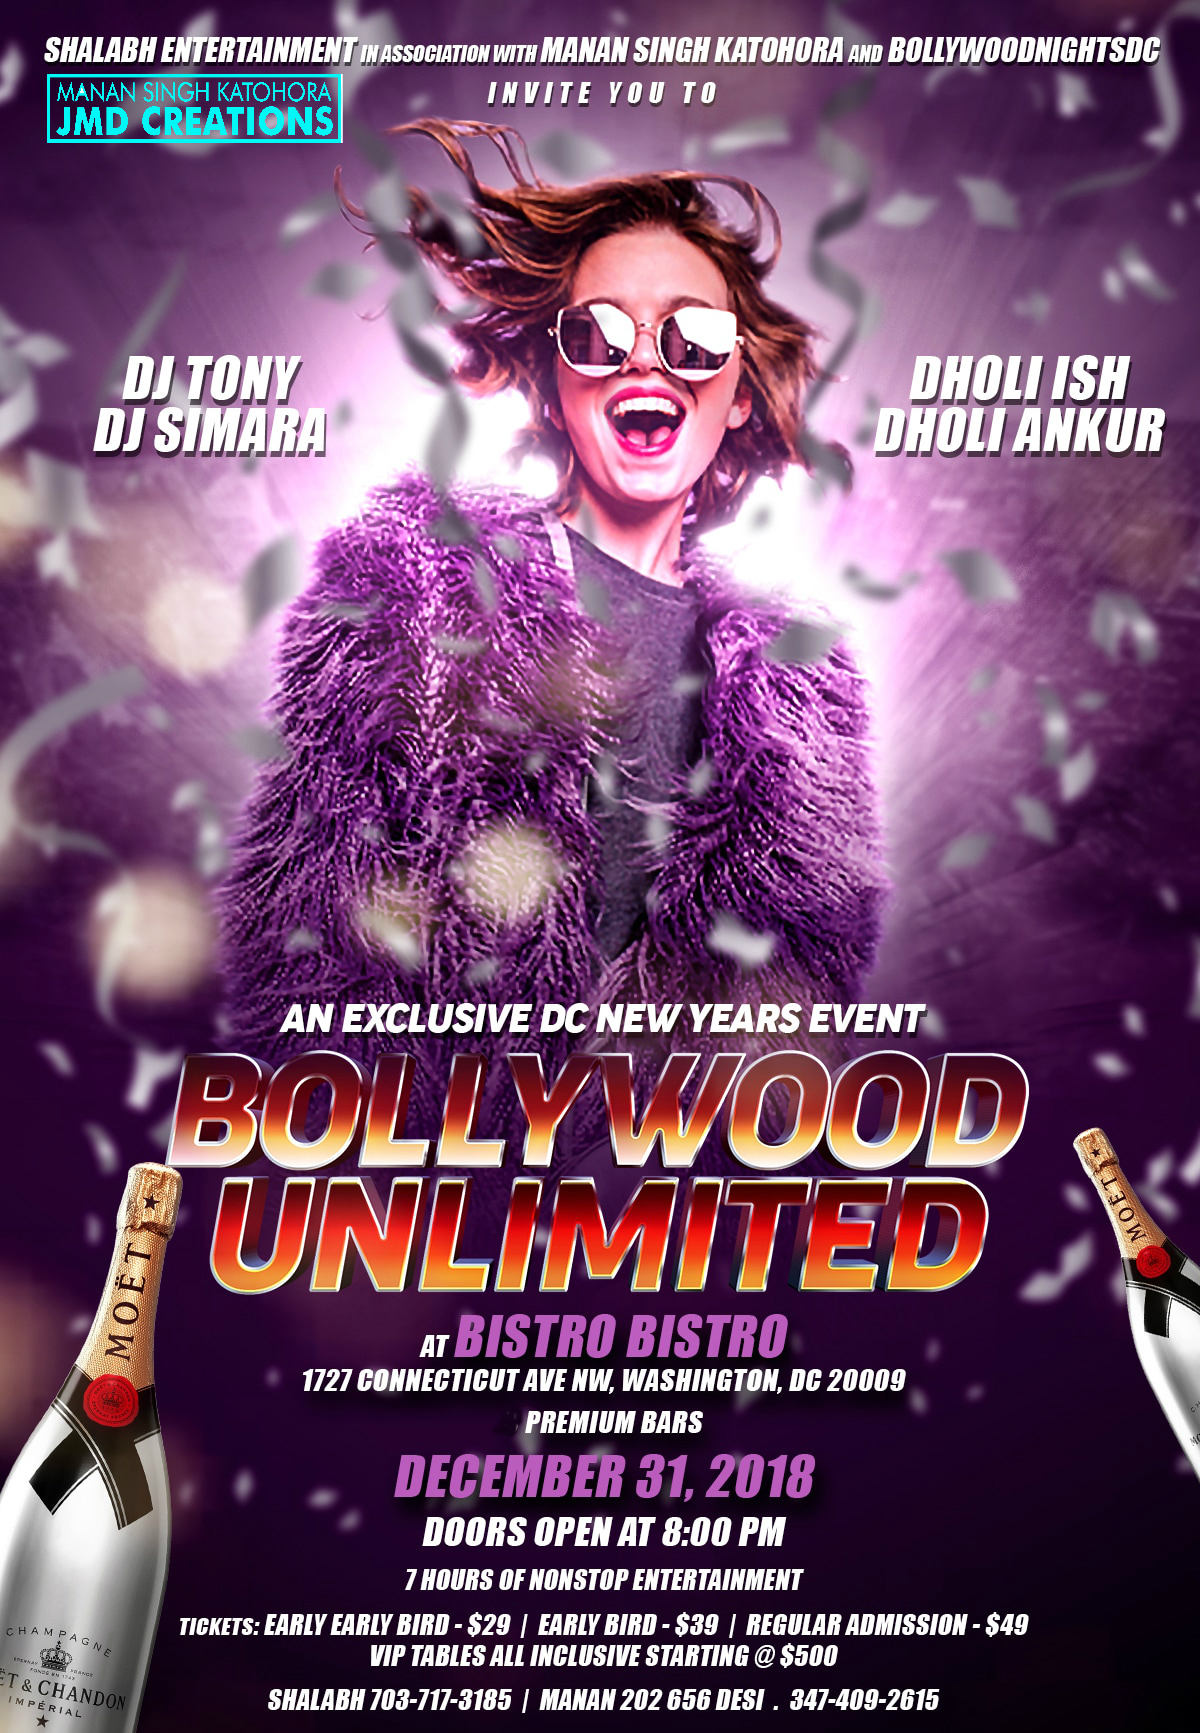 BOLLYWOOD UNLIMITED - Next Level NYE Entertainment at BISTRO BISTRO with 4 Celebrity Artists